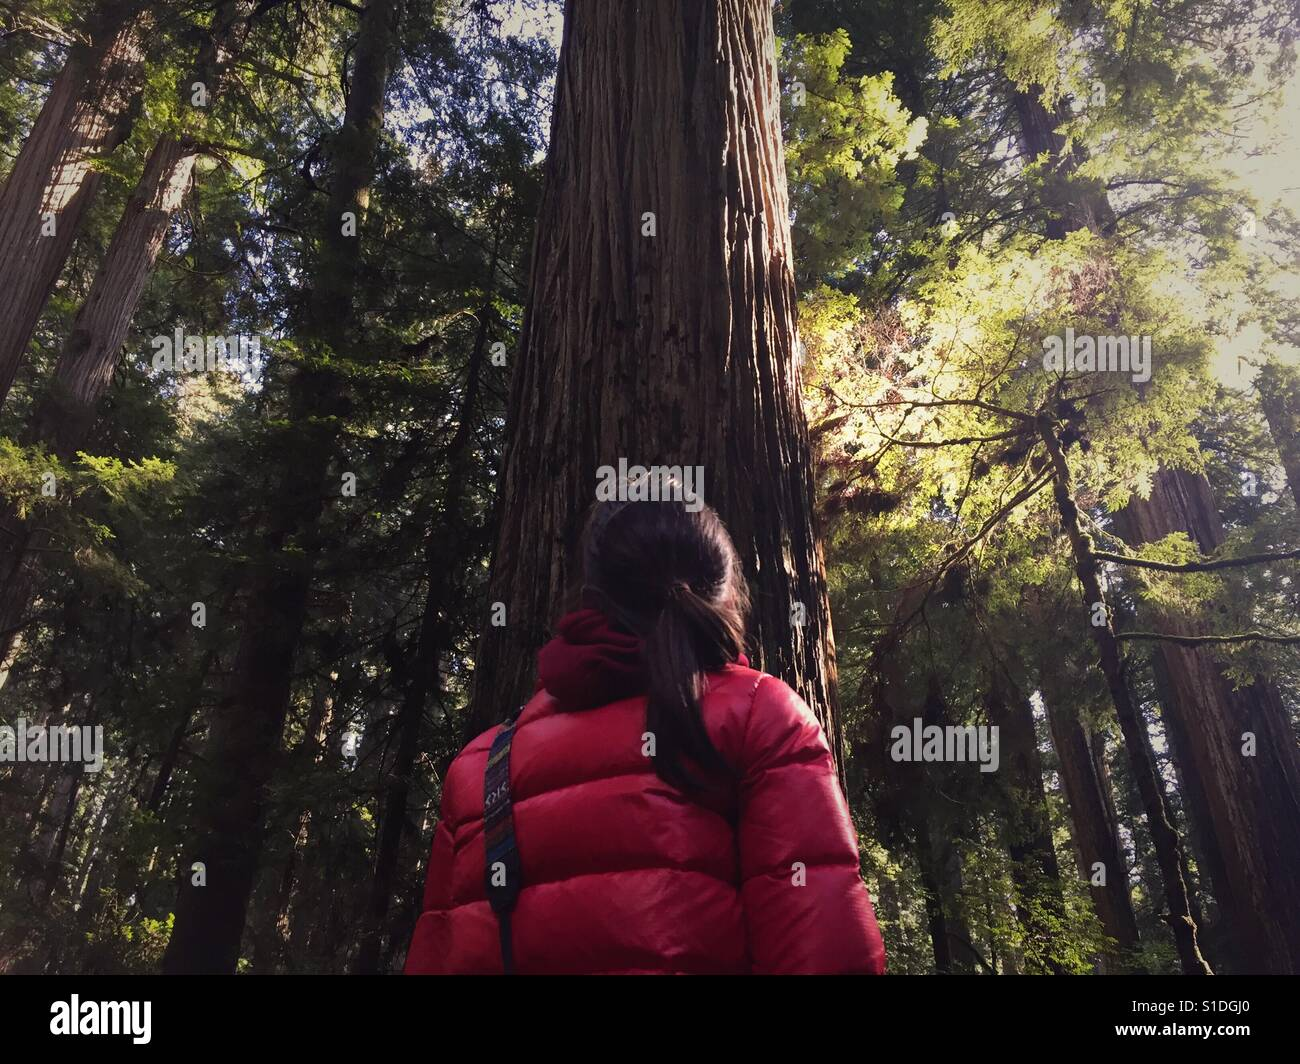 A teen girl wearing a red coat looks up at the base of a redwood tree in Jedediah state park in Northern California. - Stock Image